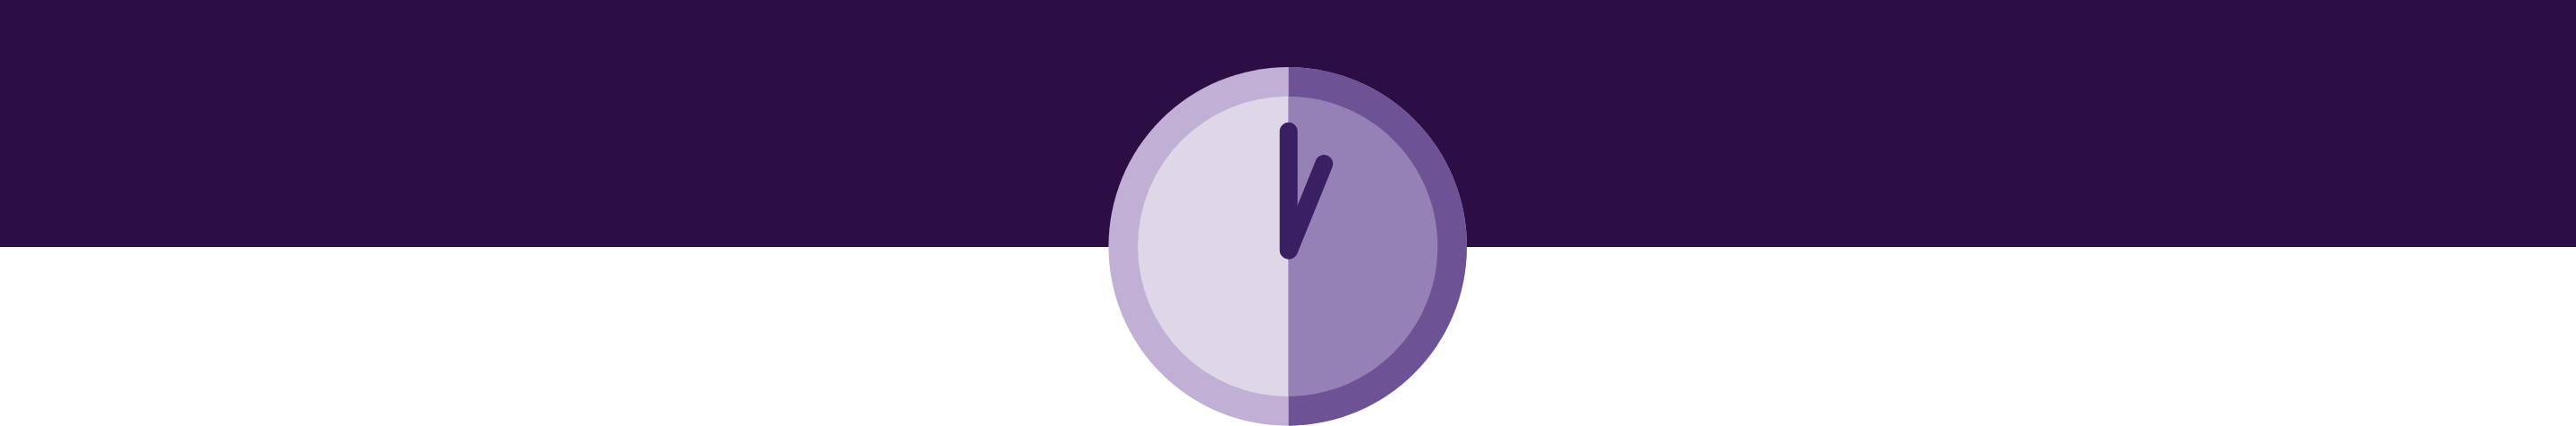 purple clock icon